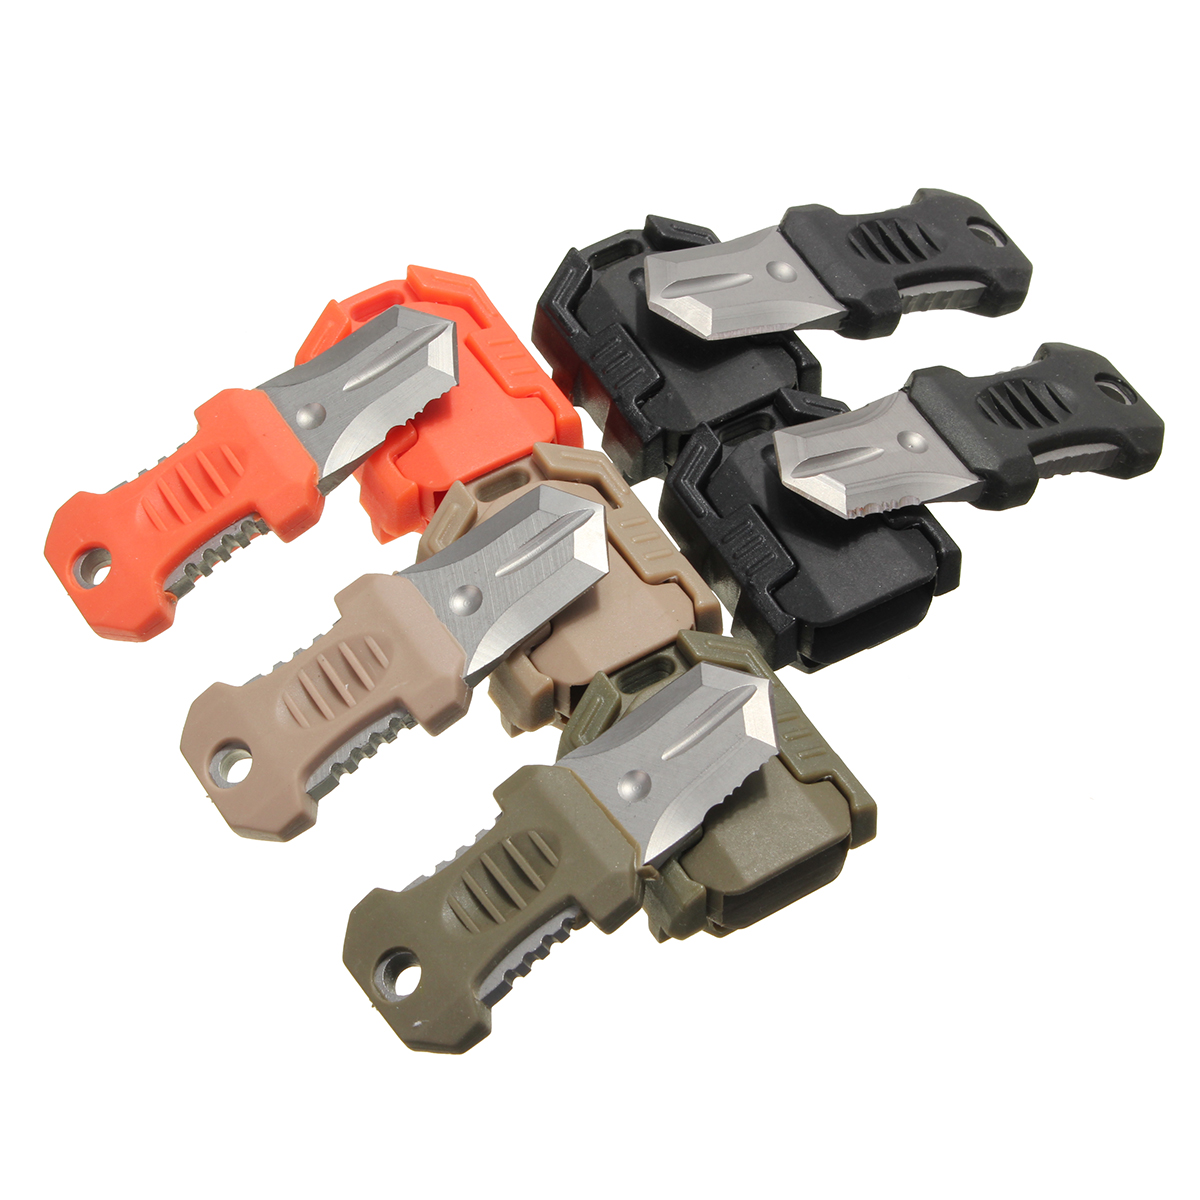 Multifunction Mini Pocket EDC Self Defense Survival Knife Tool Molle Webbing